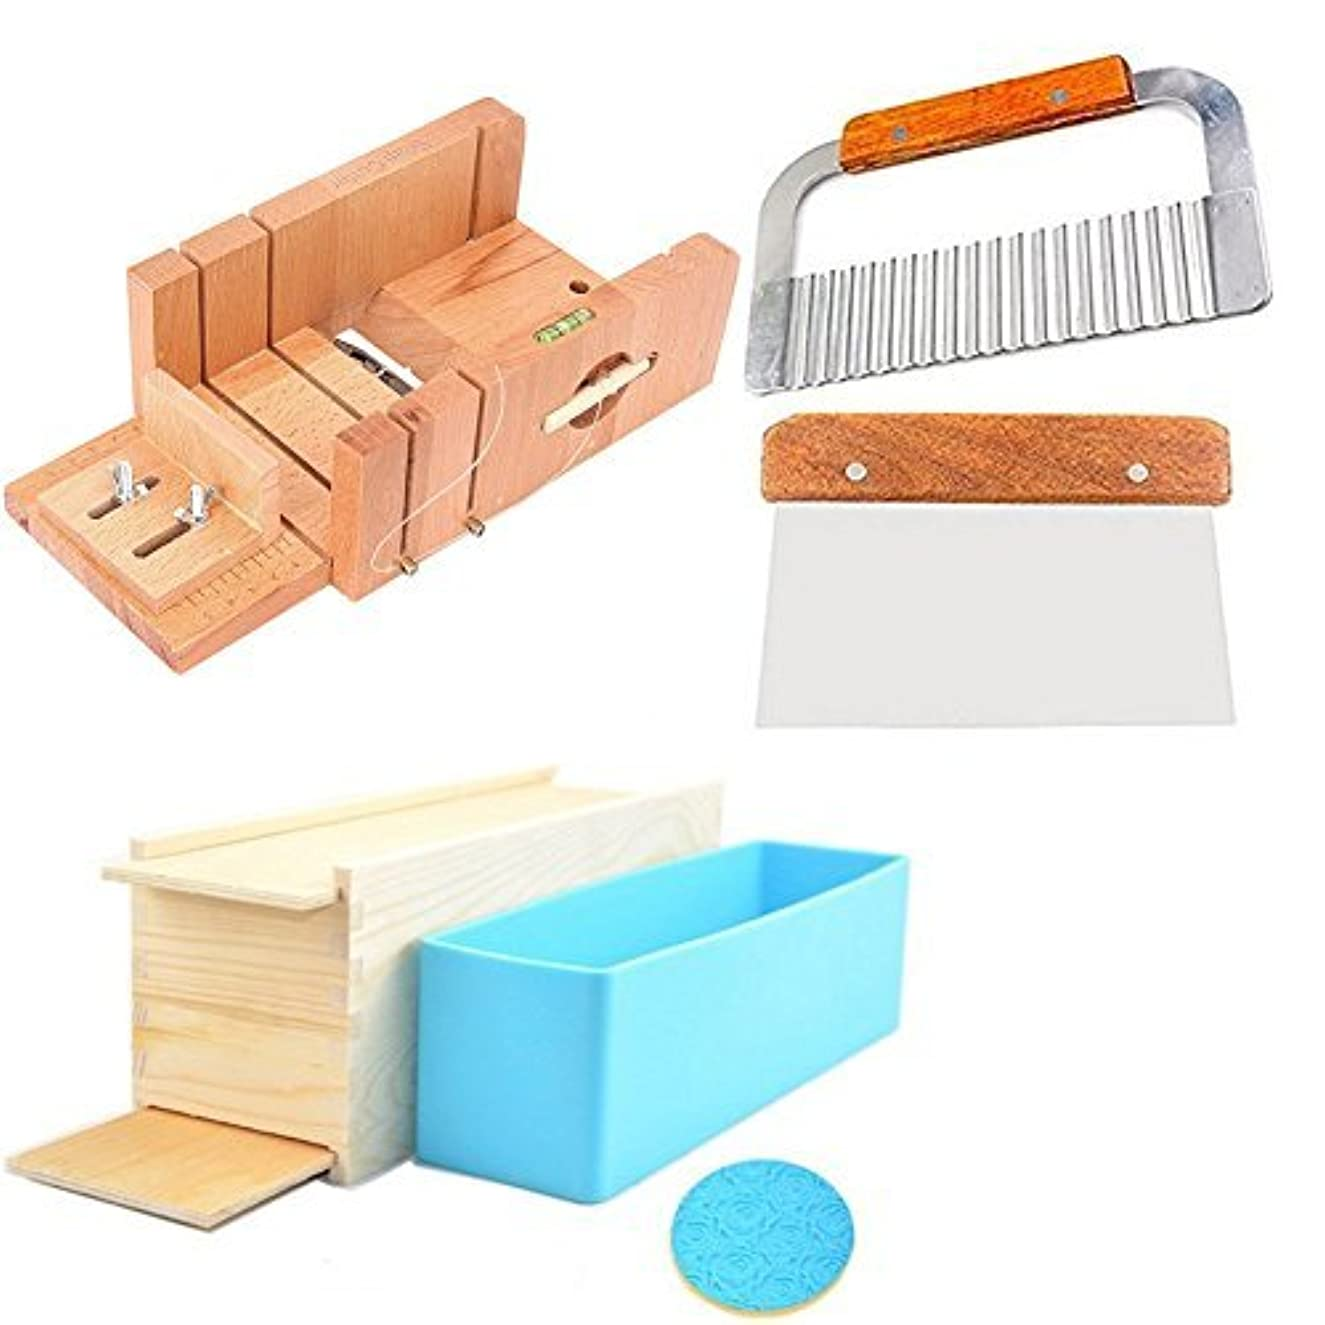 6MILES 2 Pcs Stainless Steel Straight Wavy DIY Making Loaf Garnish Cake Soap Cutter + 1 Pcs Newest Wood Box with Line Wire Tool Peelers Slicers Knife Set +1 Pcs Newest Rose Silicone Mold with Box